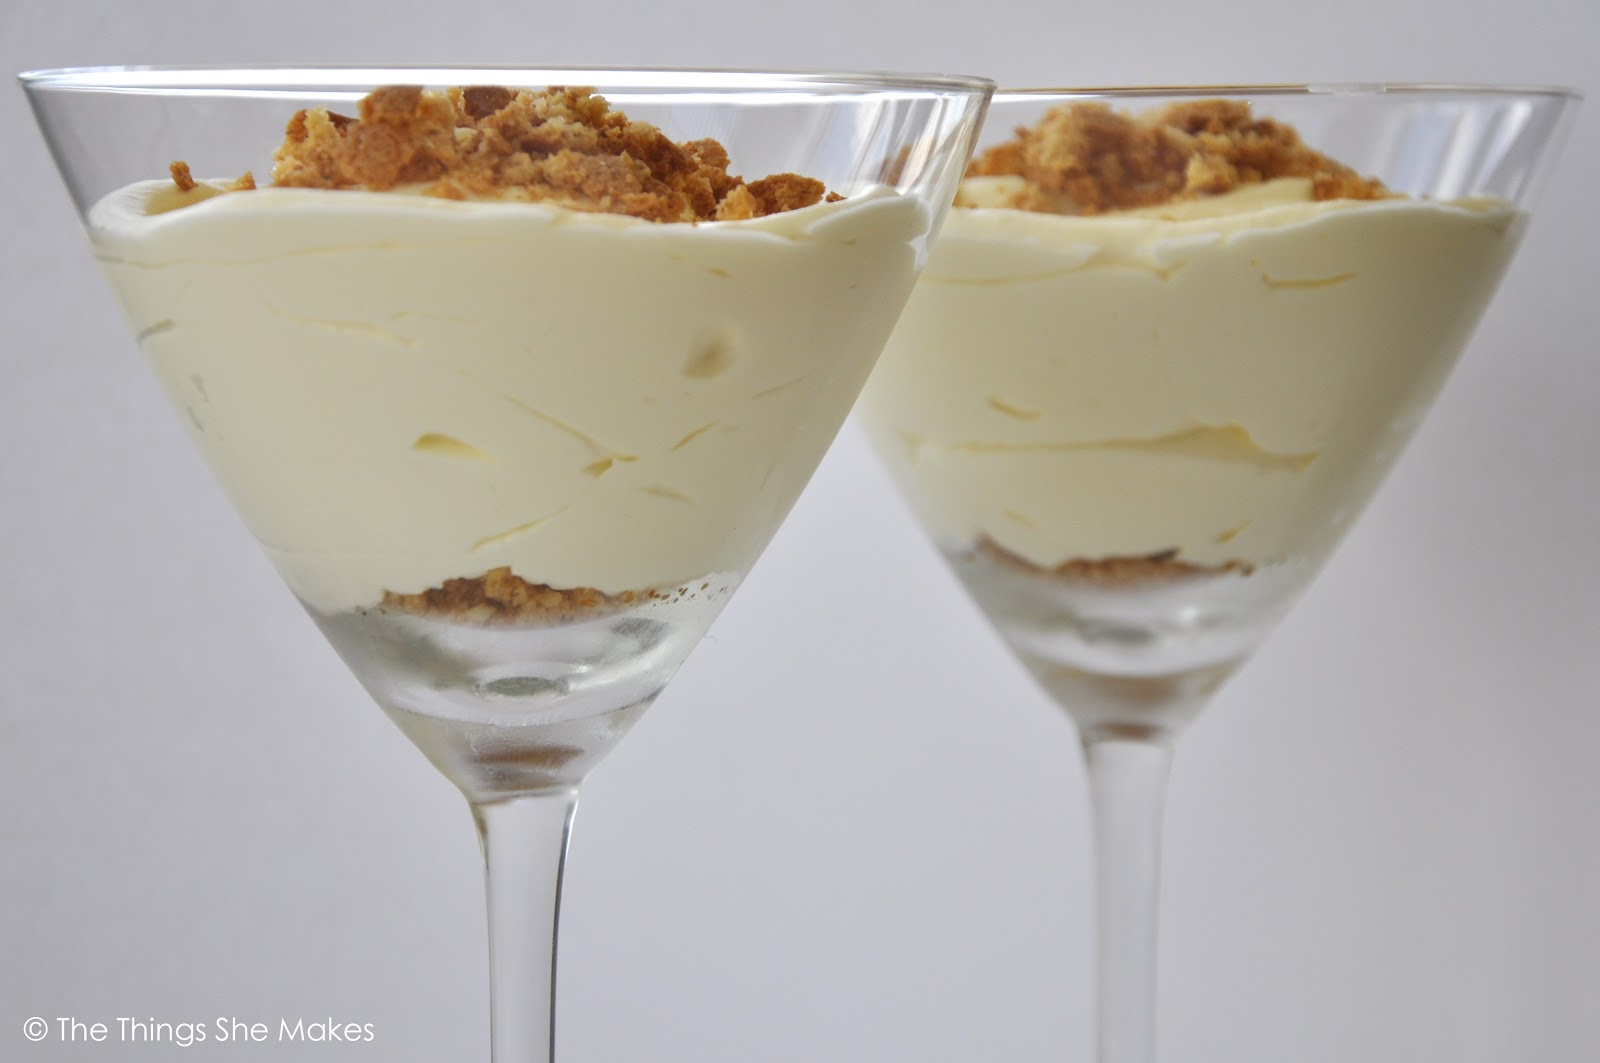 how to make lemon and amaretti biscuit dessert the things she makes